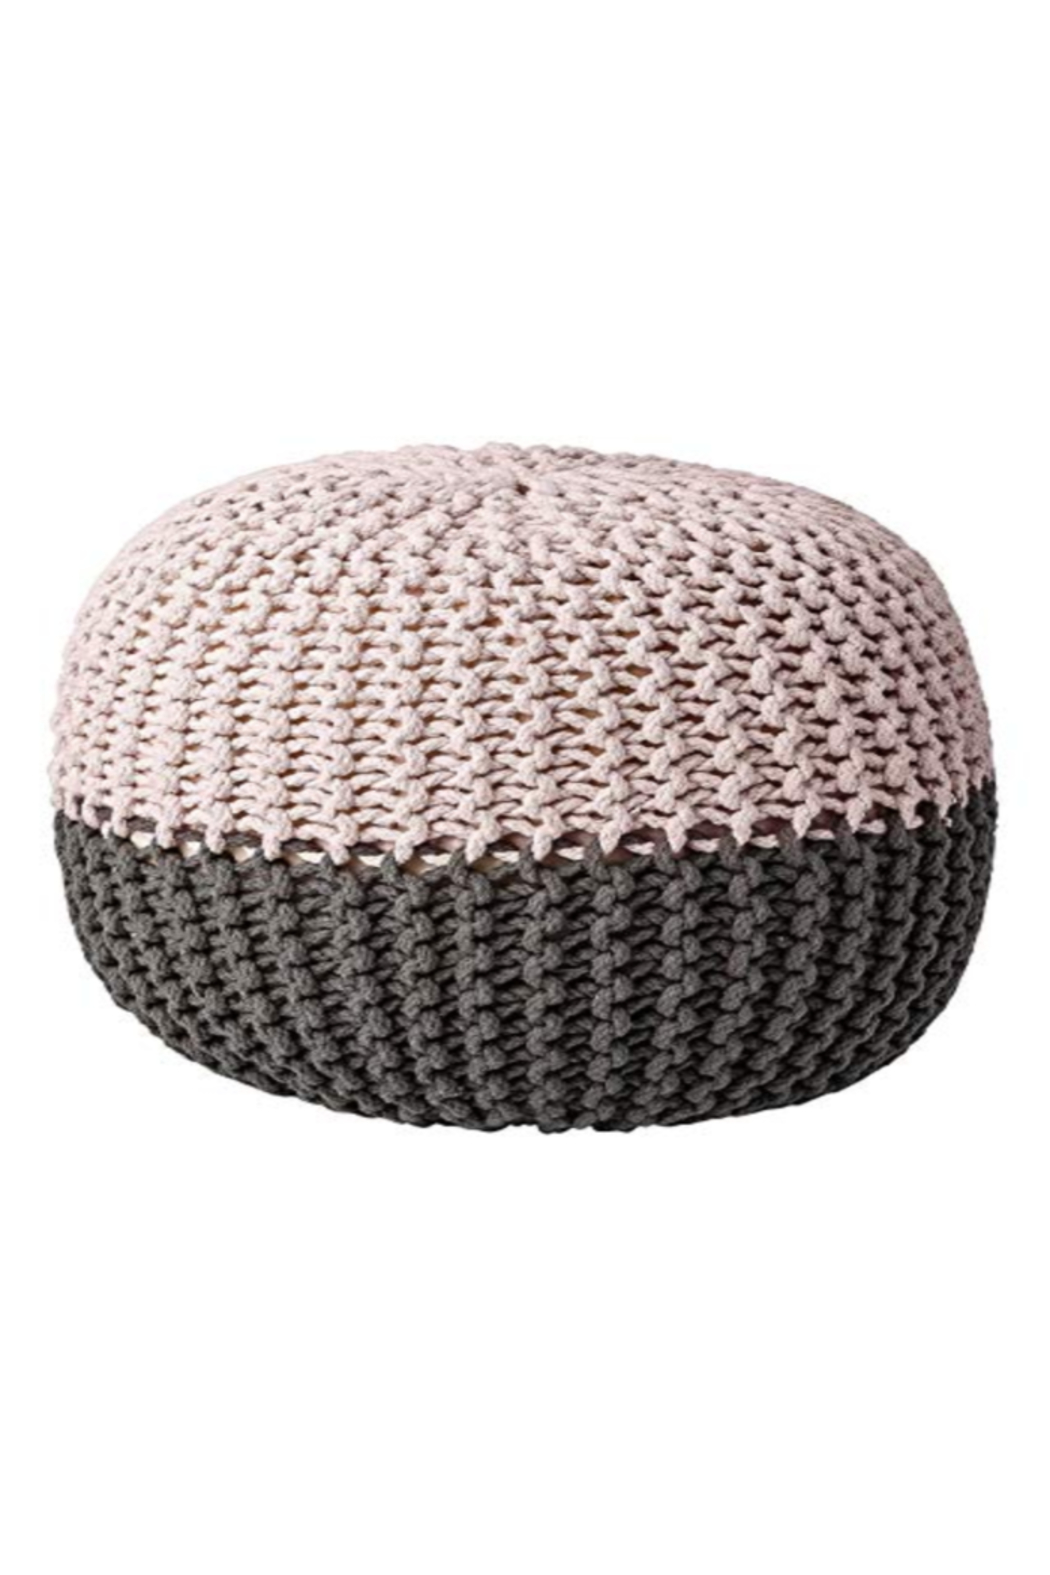 The Birds Nest GREY/NUDE POUF - Front Full Image